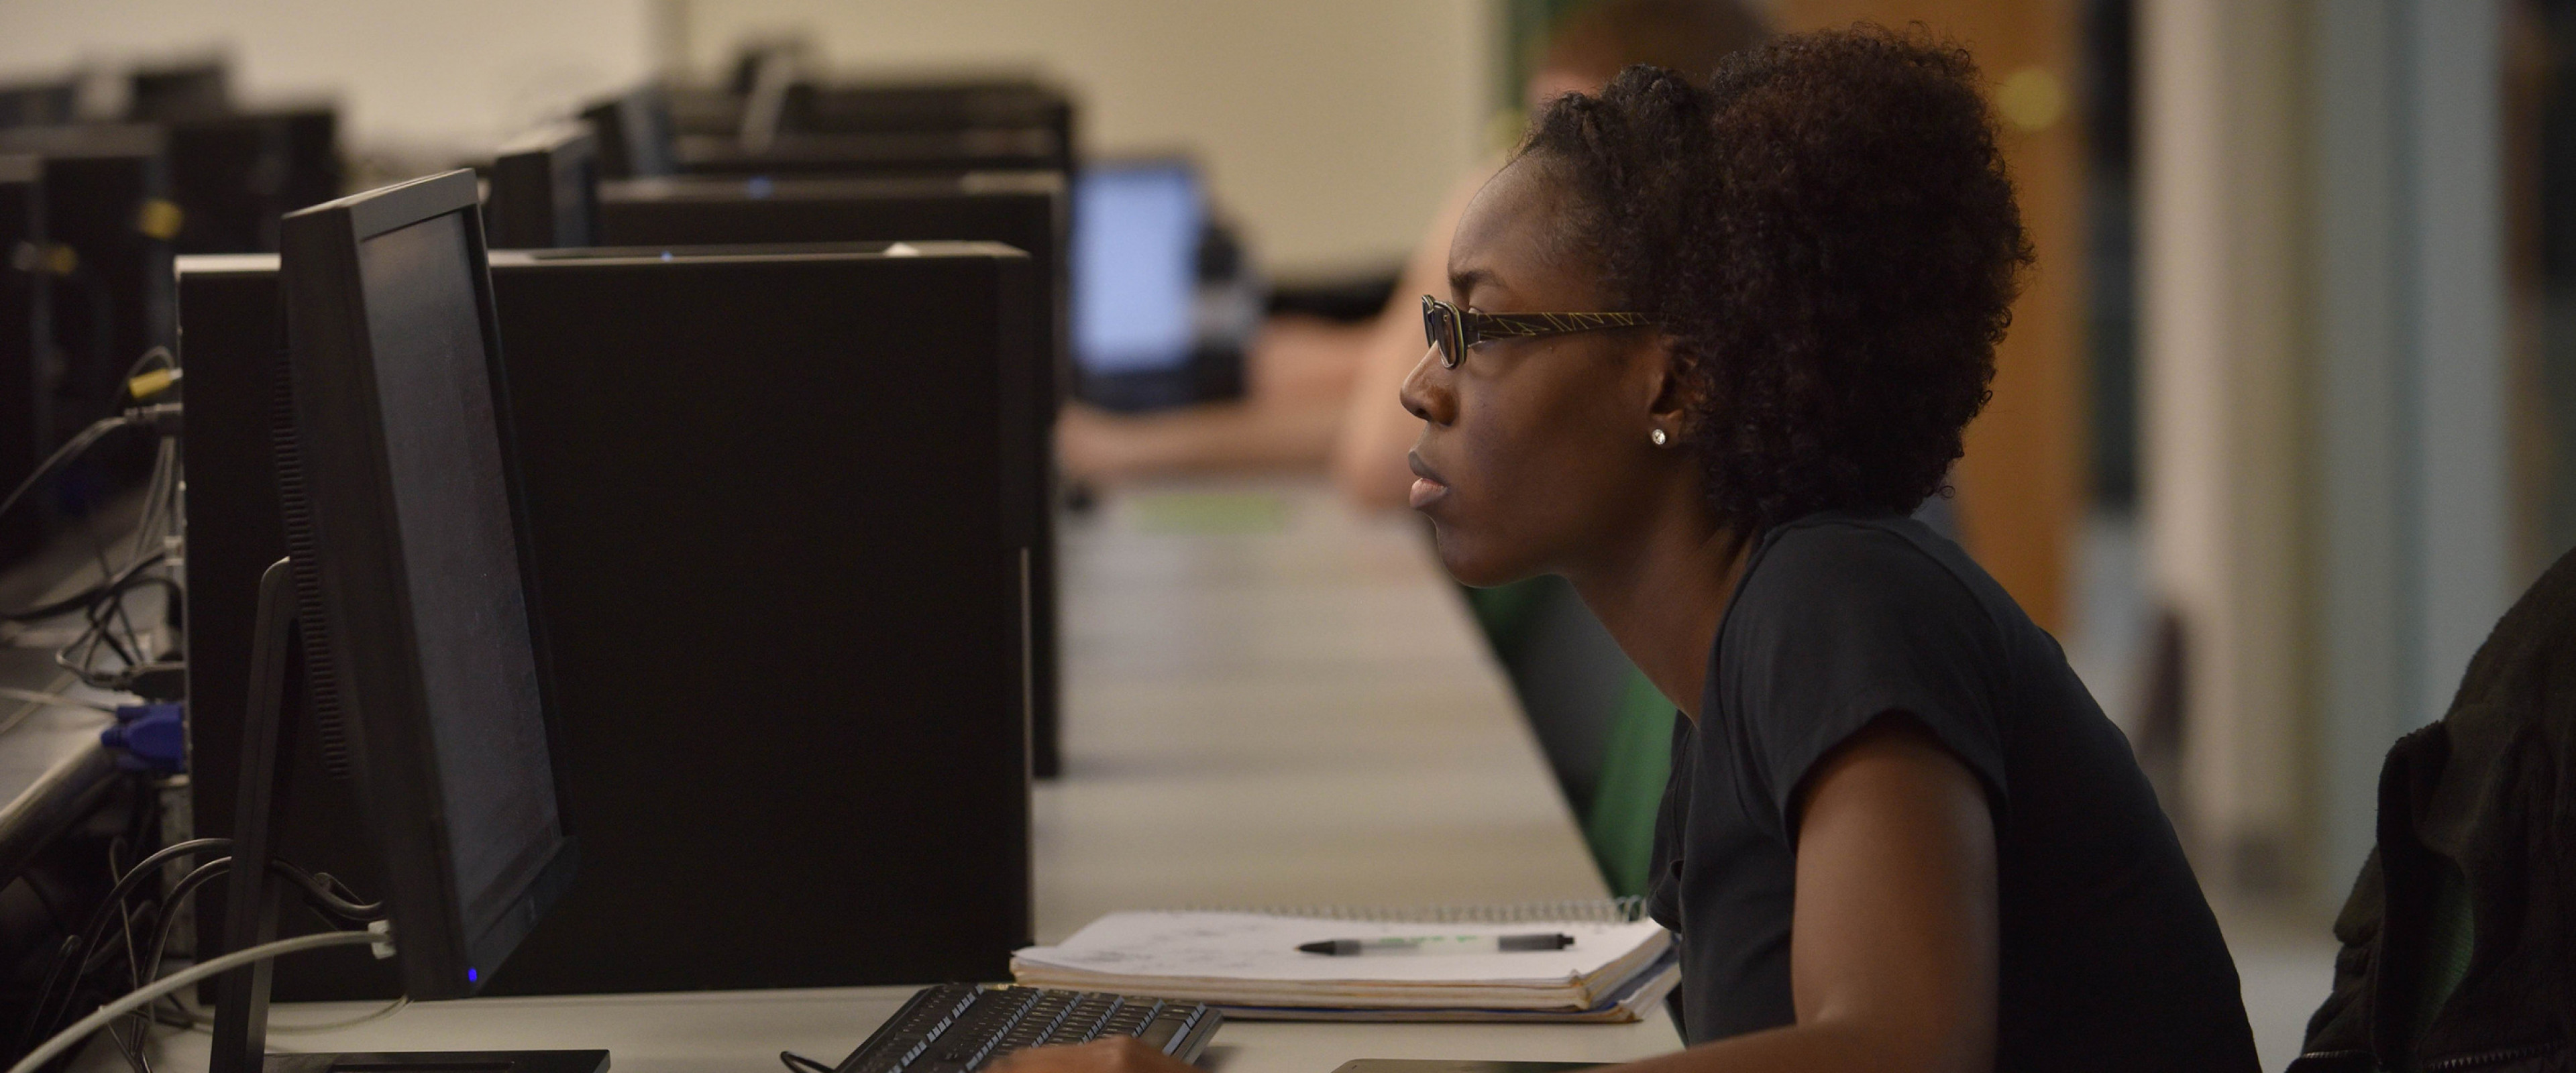 A woman sitting at a computer at the Haworth College of business.